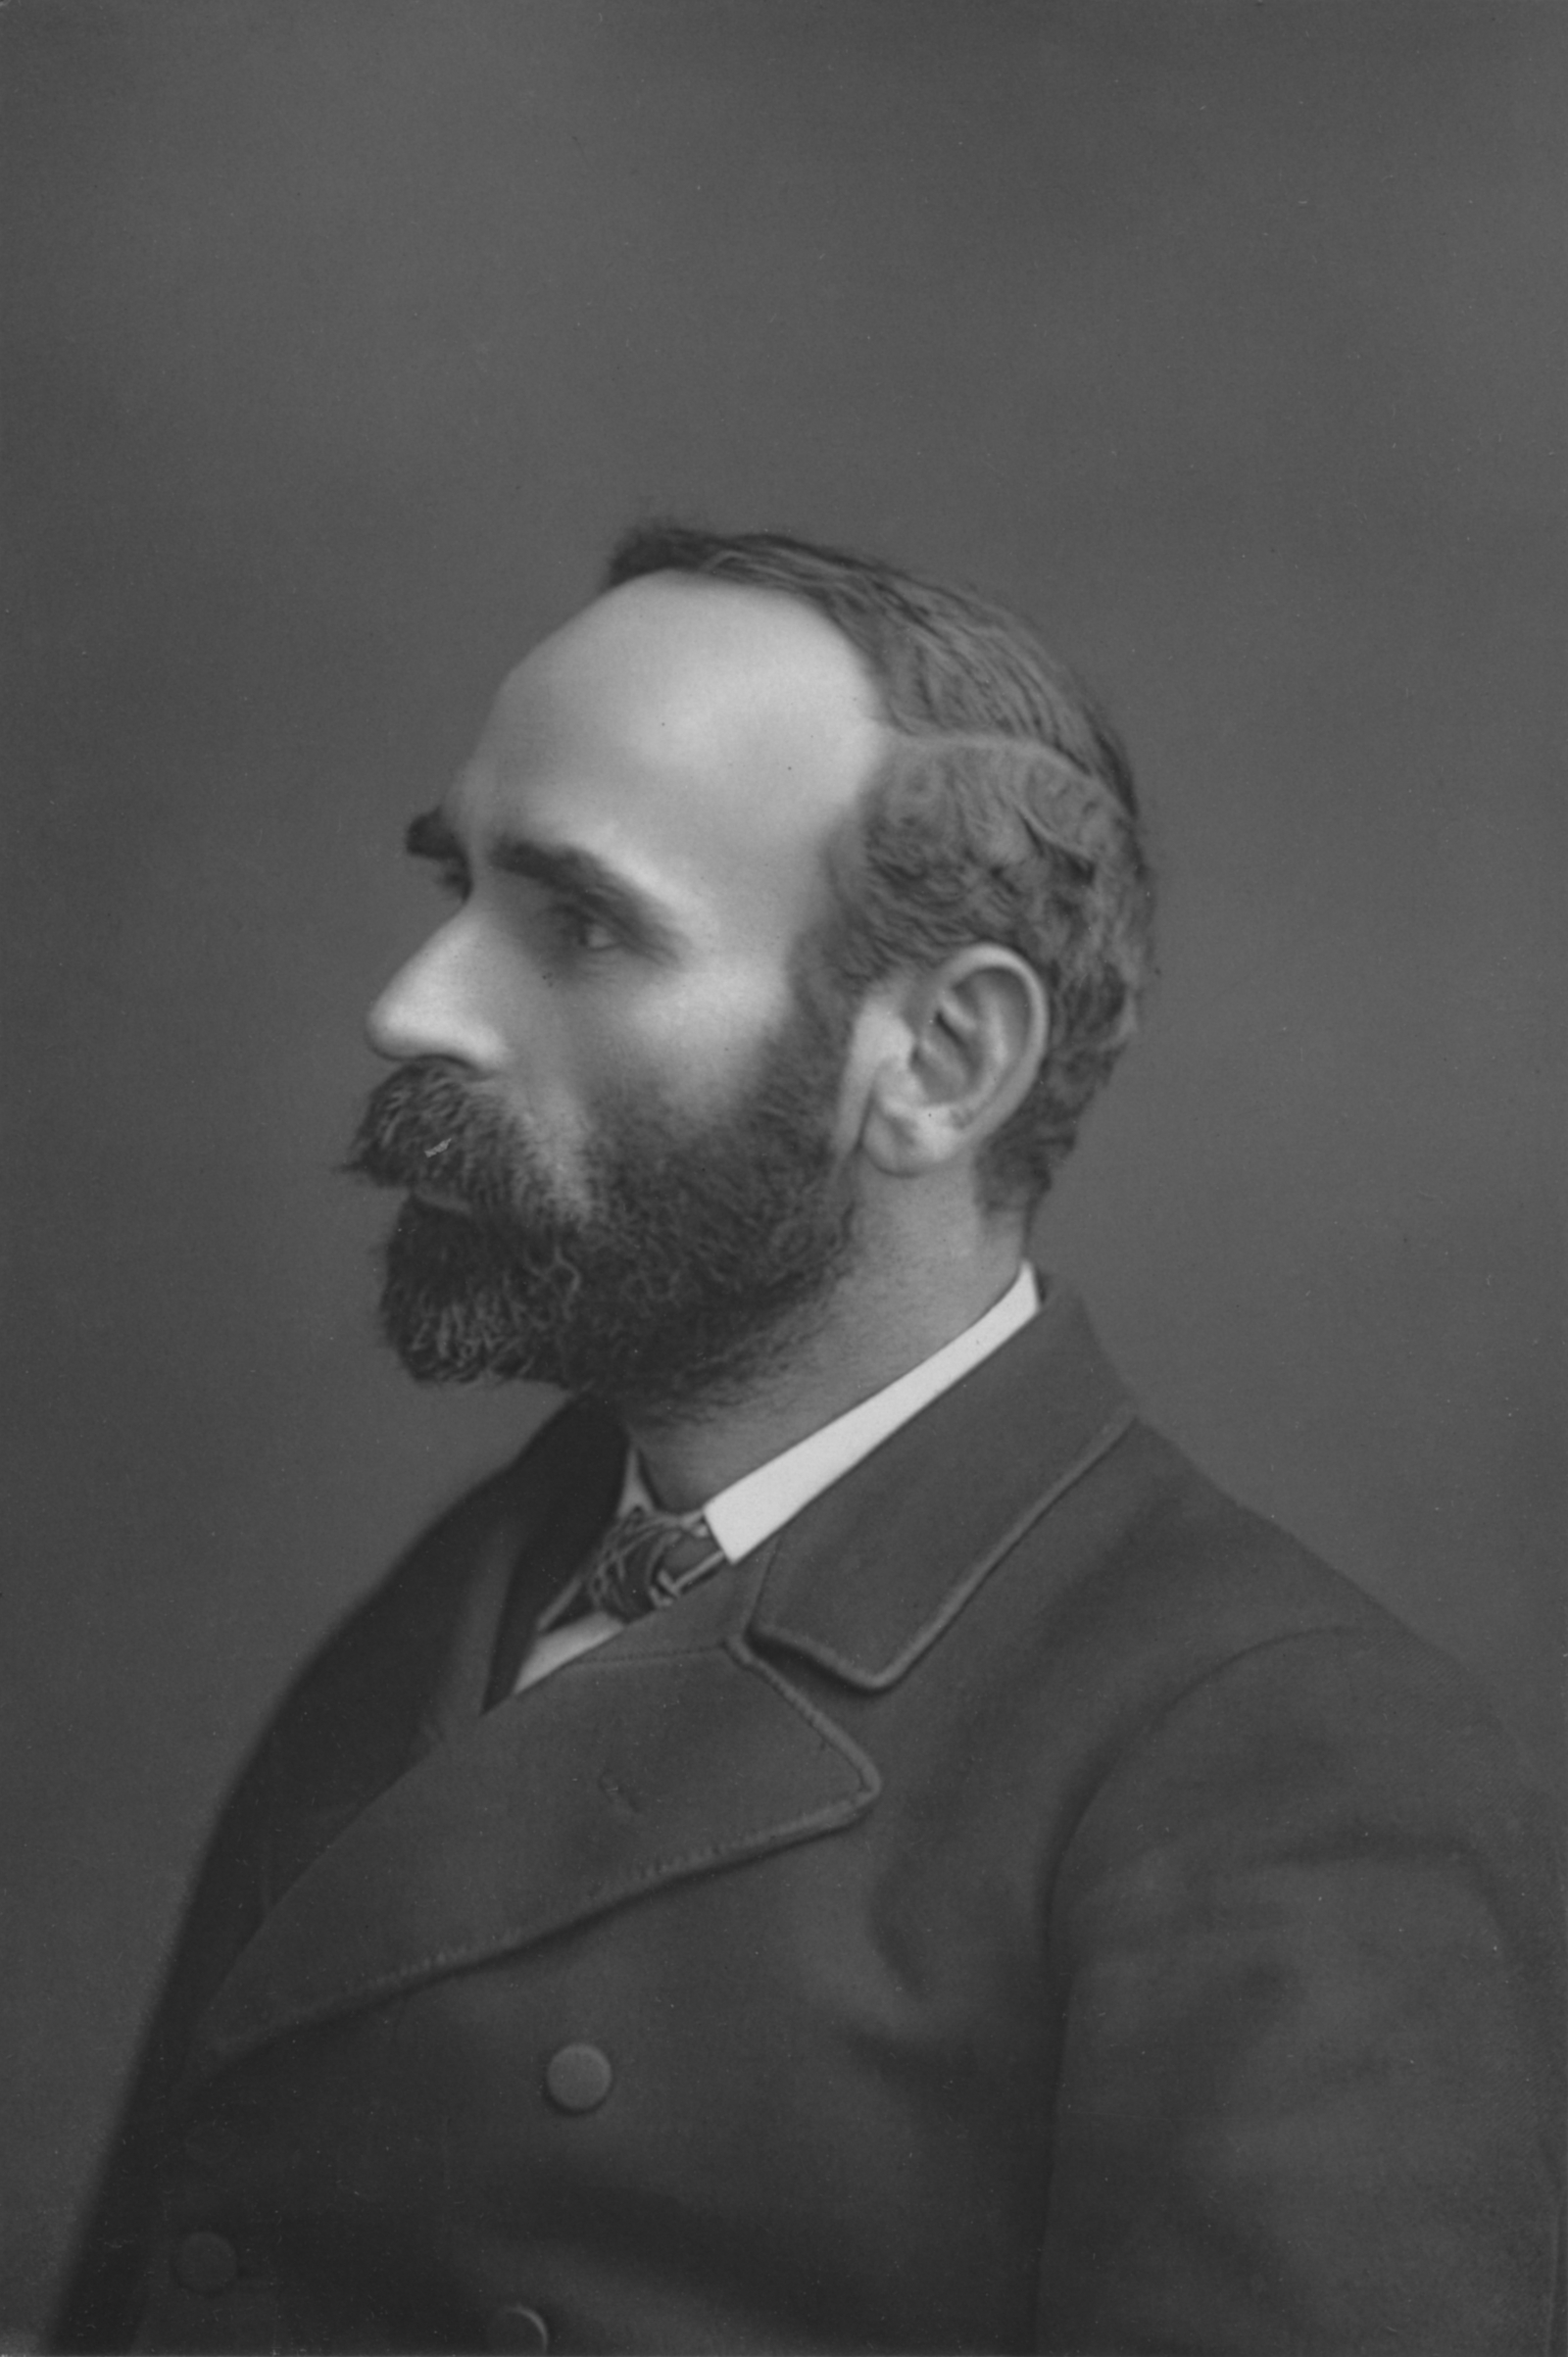 Image - Michael Davitt (c1891), from 'The Cabinet Portrait Gallery' (Cassell & Company, Ltd, London), 1890-94. Davitt's Land League had its roots in the trauma of the Famine. Photo: Print Collector/Getty Images